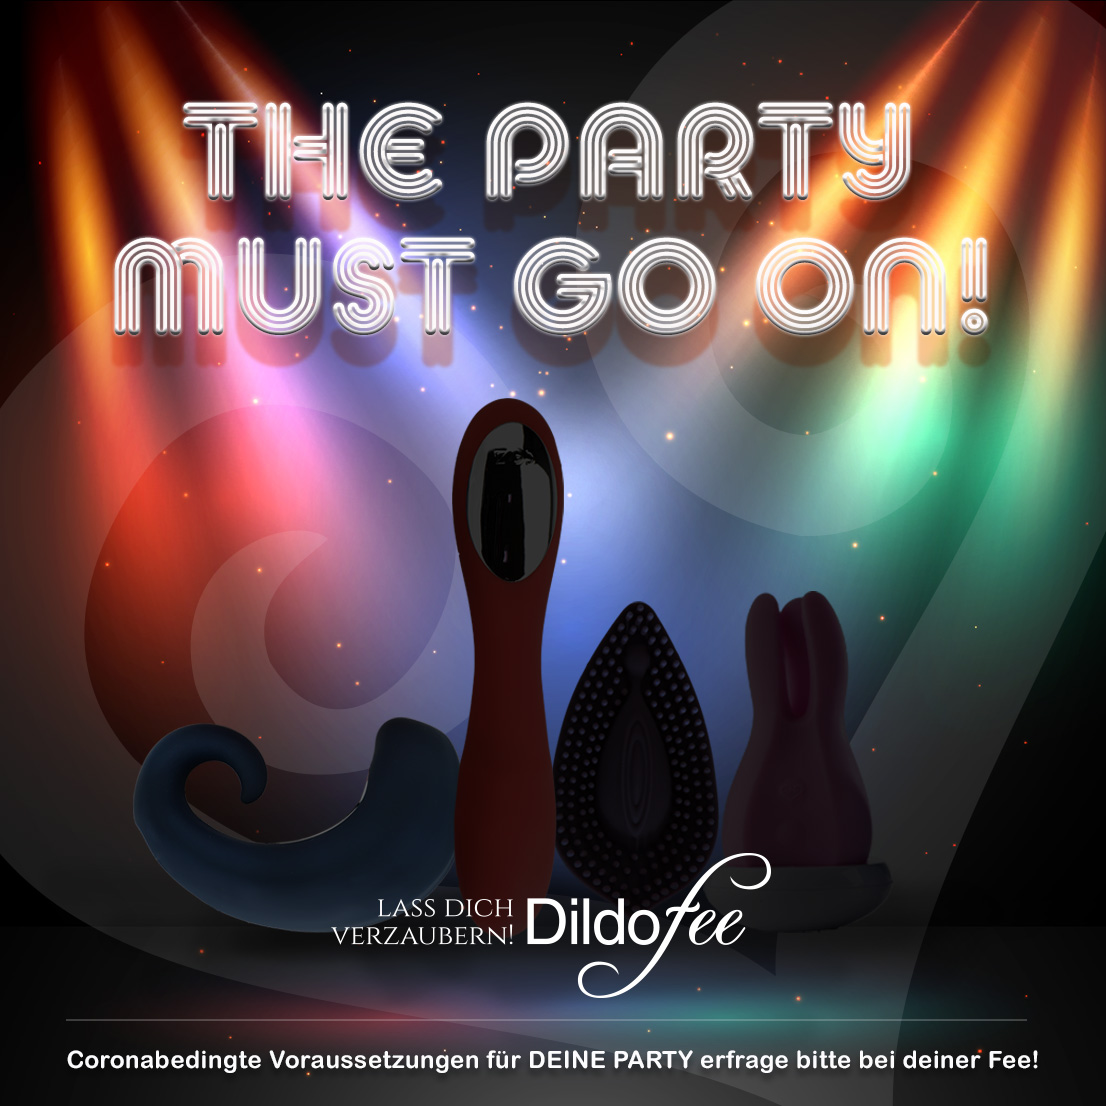 Party_must_go_on